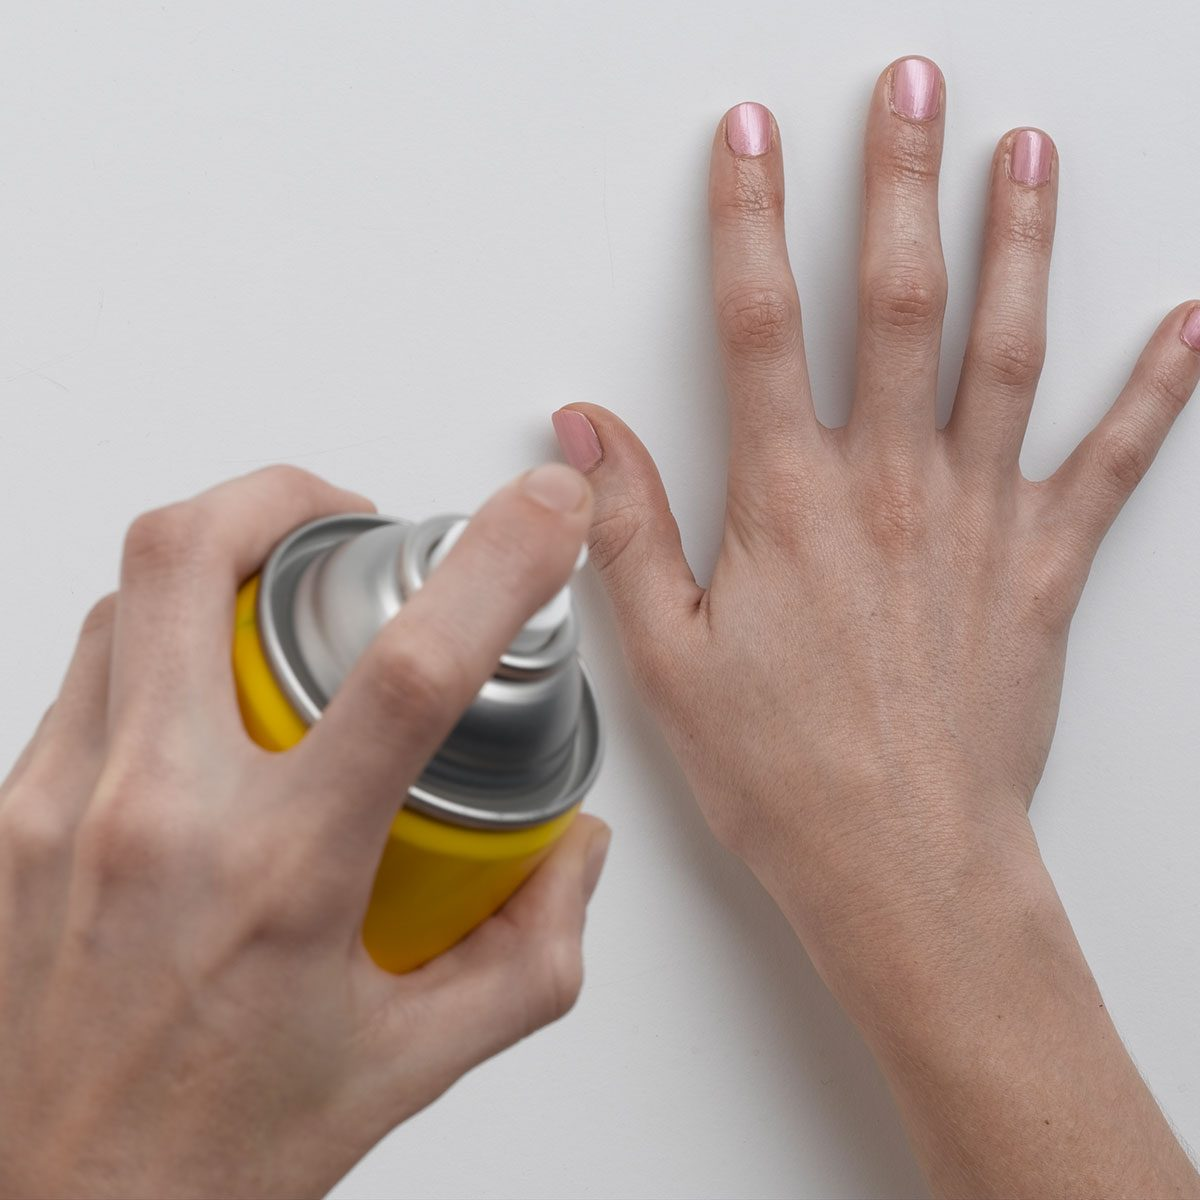 Cooking spray on nails